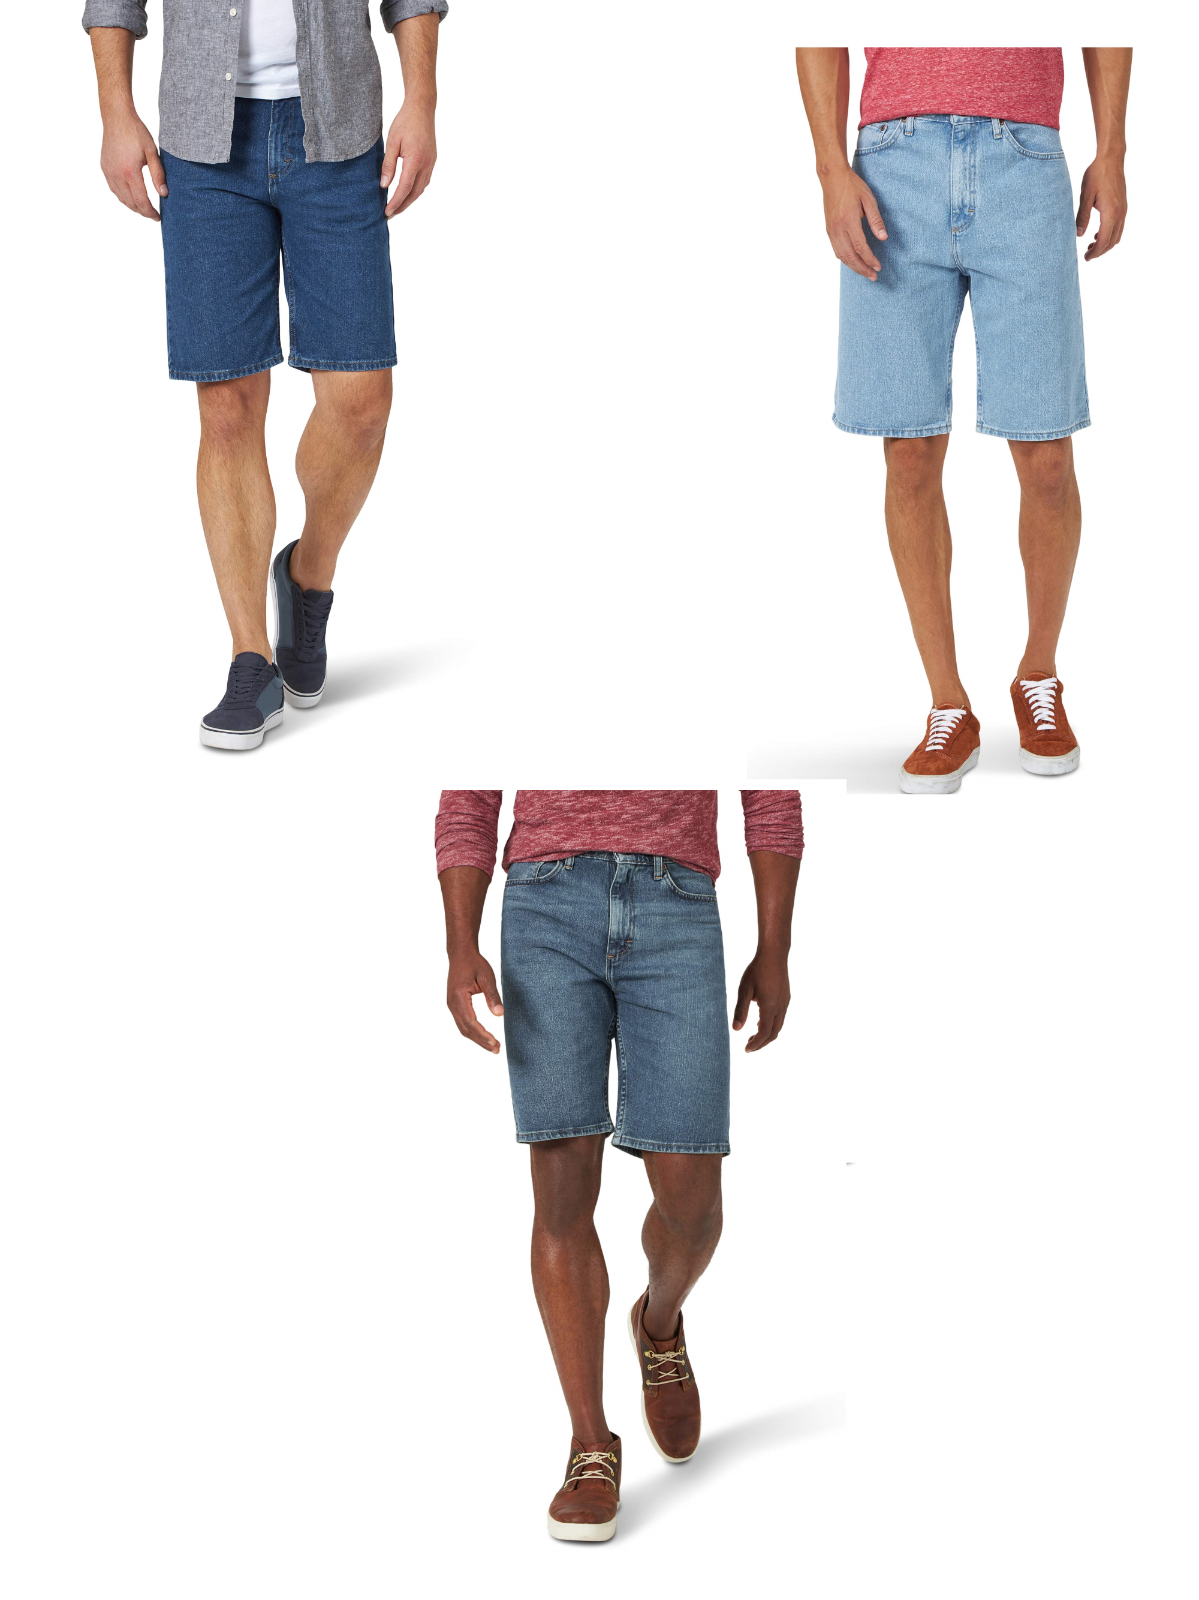 NEW MENS WRANGLER 5 POCKET DENIM JEAN SHORTS BUY MORE SAVE MORE$$ Clothing, Shoes & Accessories